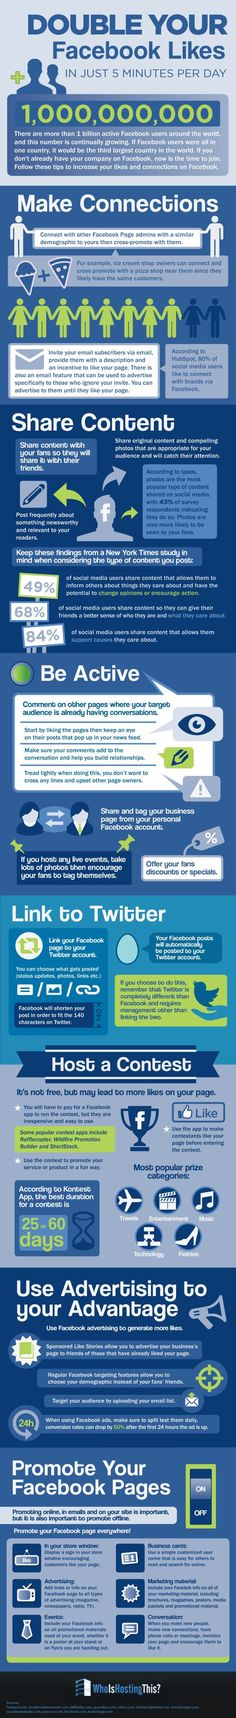 Double Your Facebook Page Likes in Just 5 Minutes a Day [Infographic]